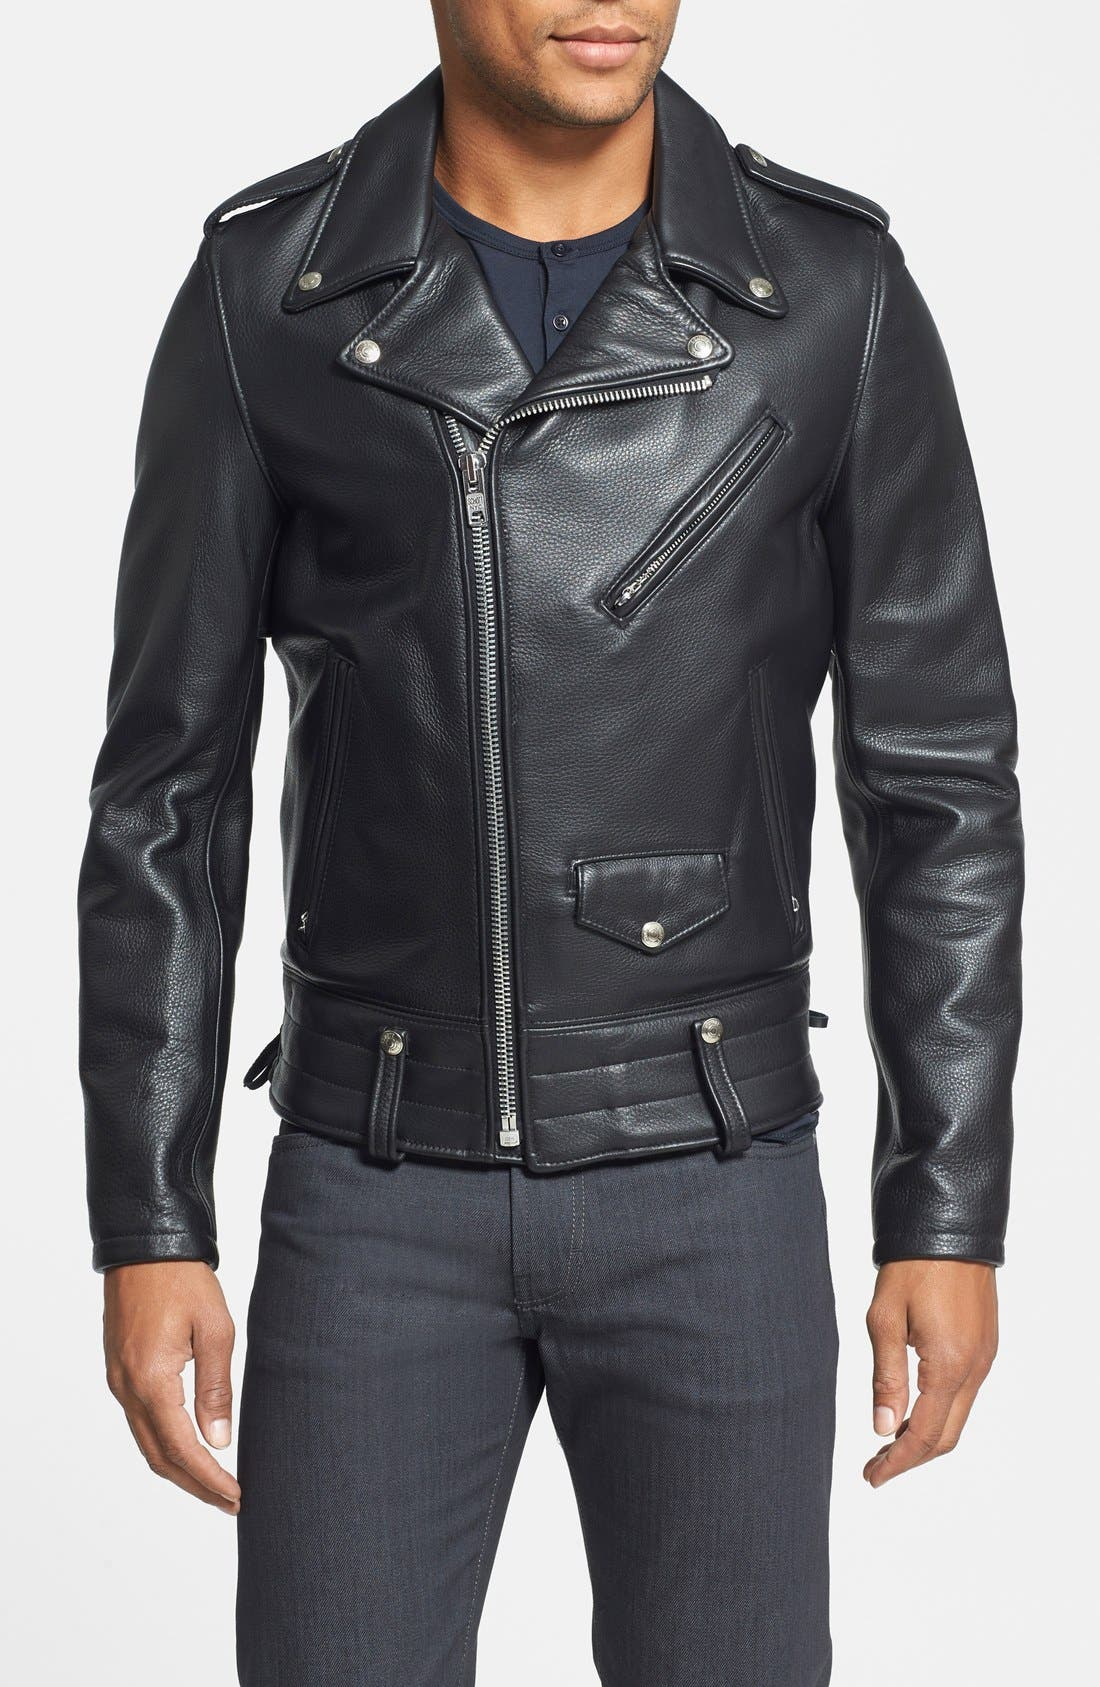 'Chips' Slim Fit Moto Leather Jacket,                         Main,                         color, Black